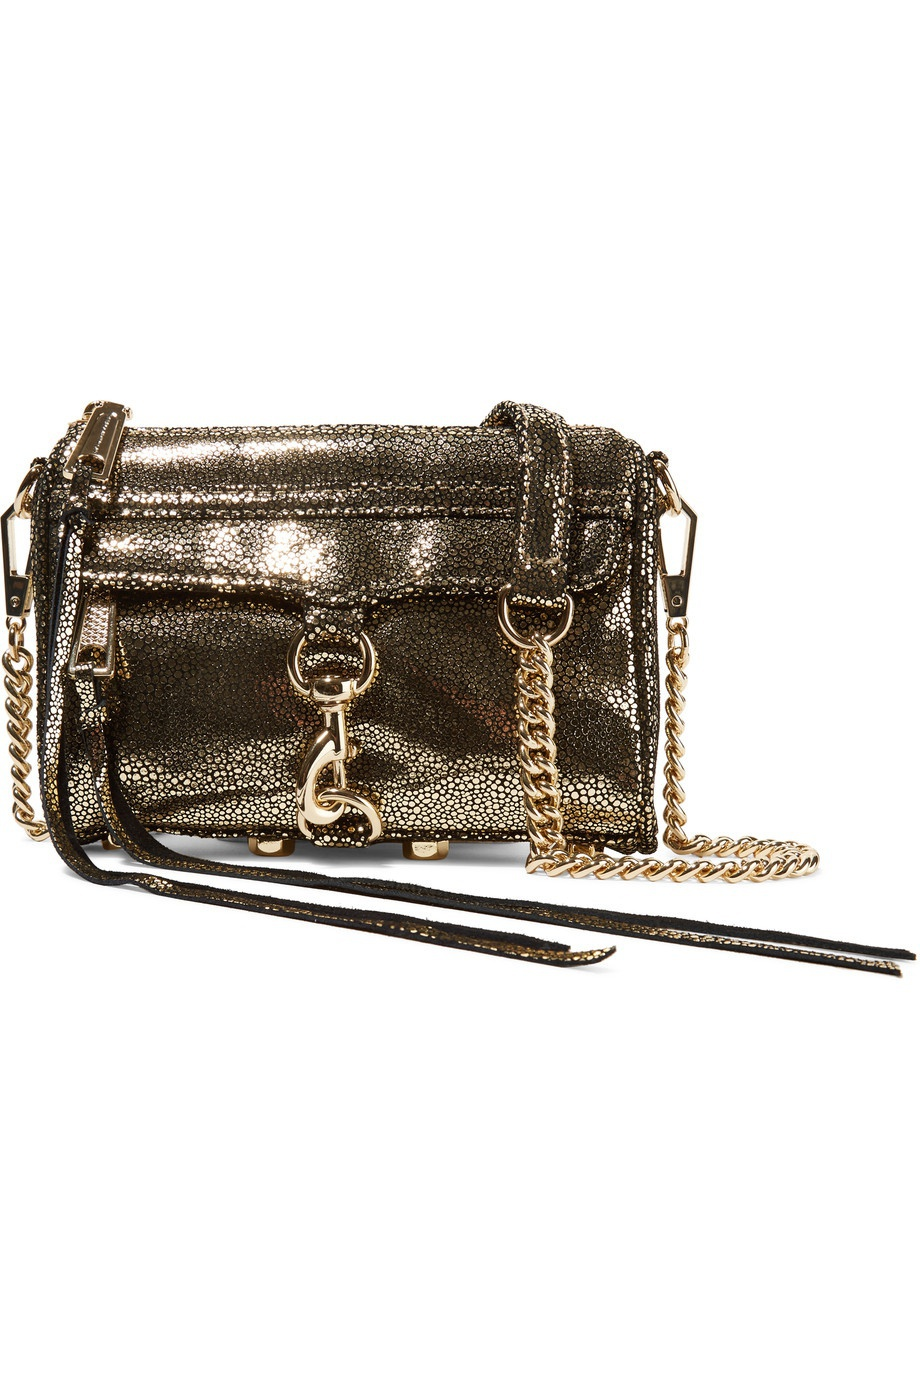 REBECCA MINKOFF Micro Mac python-effect suede shoulder bag